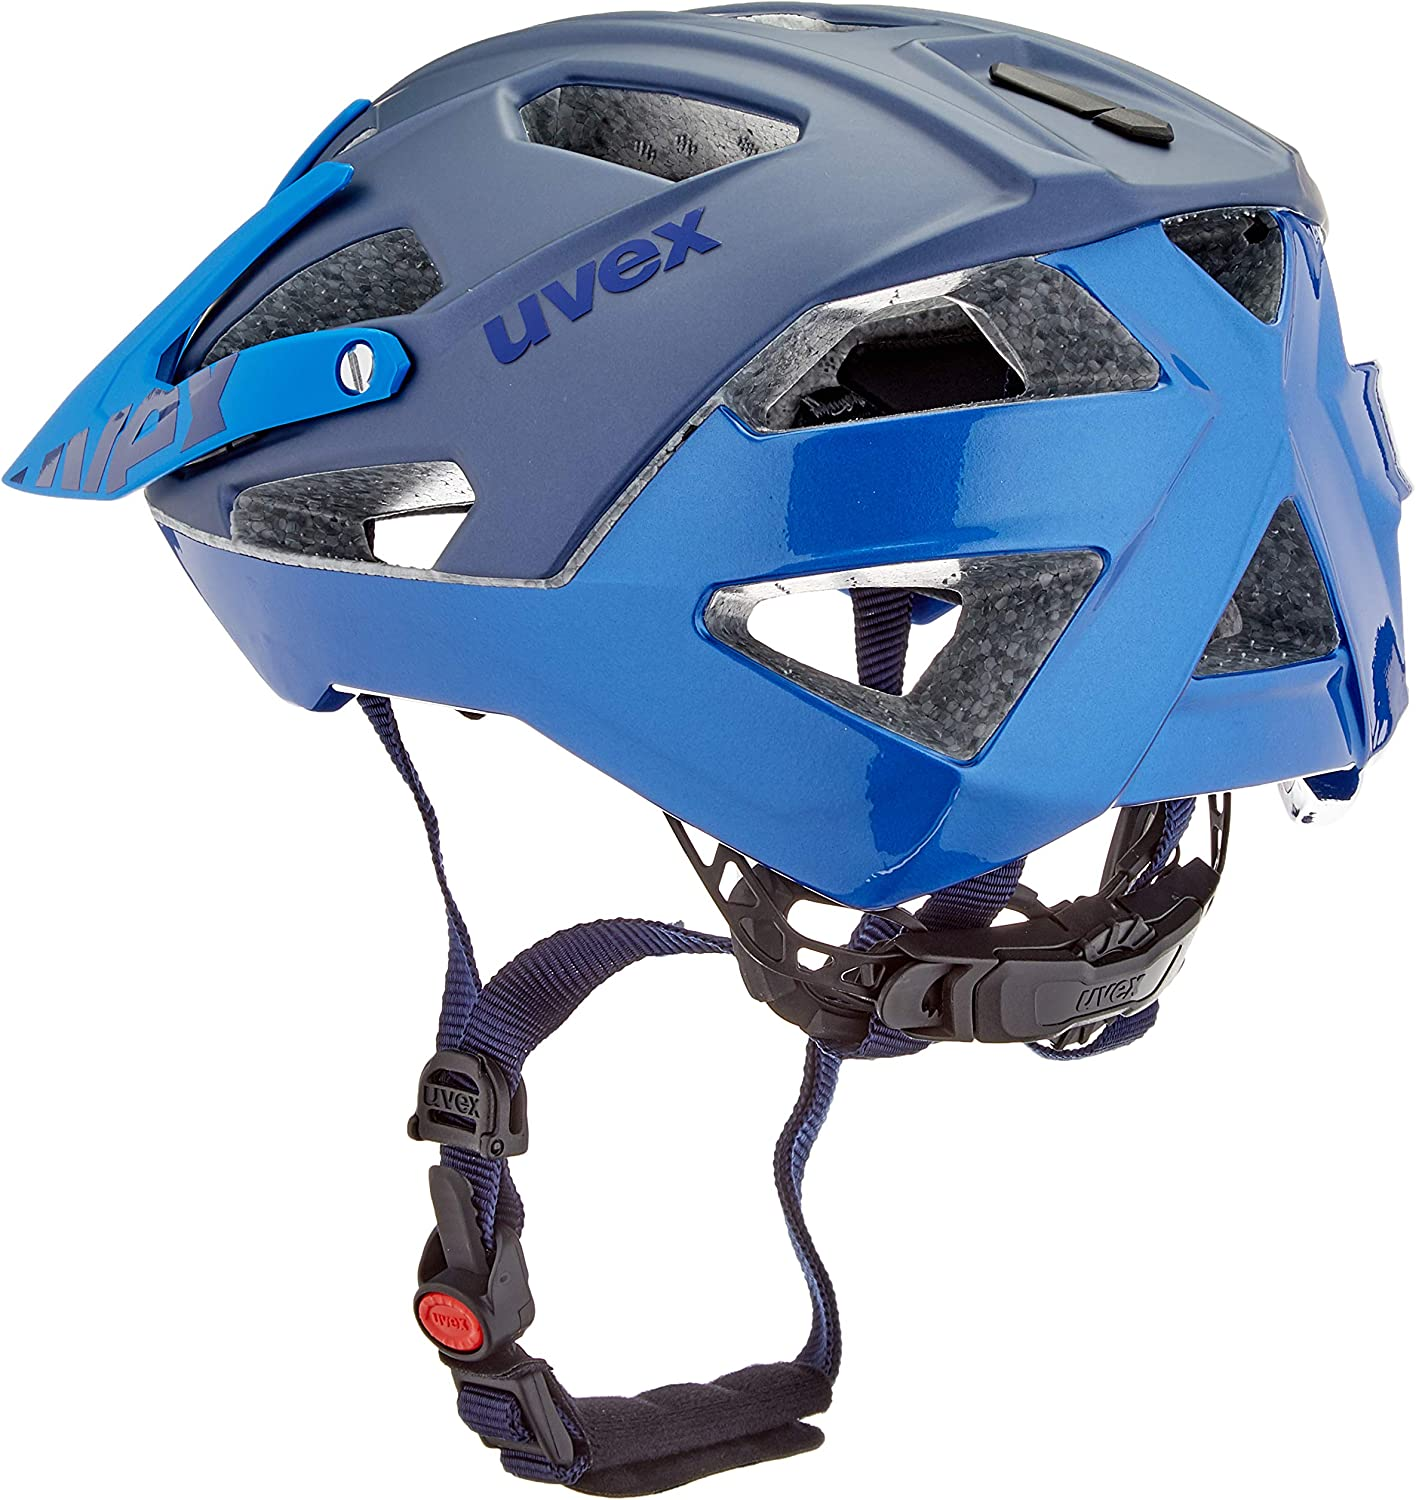 Uvex Quatro Casque de Bicyclette Mixte